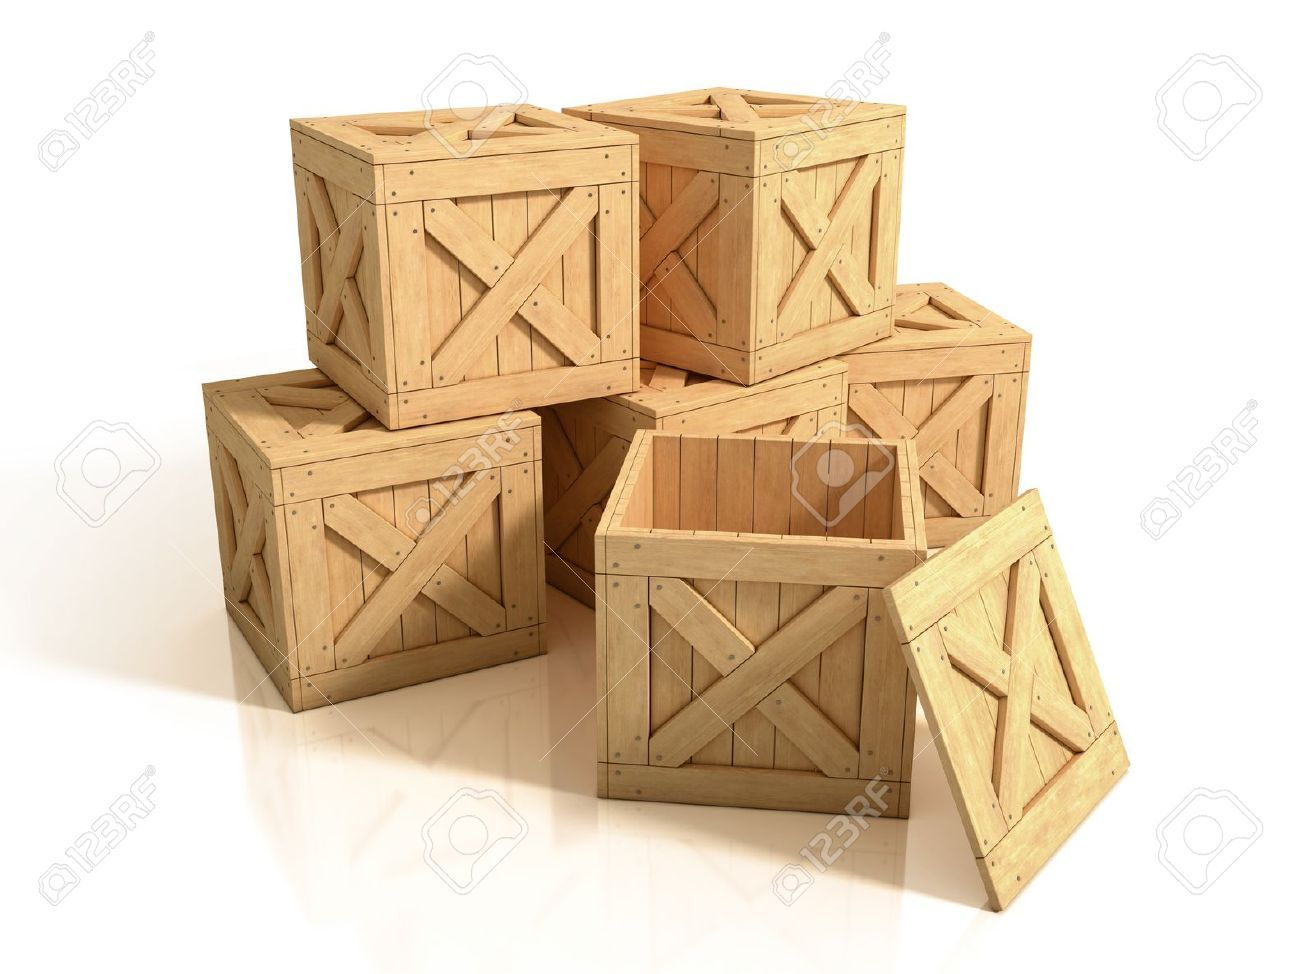 19776403 wooden crates isolated stock photo wooden cargo for Case container 974